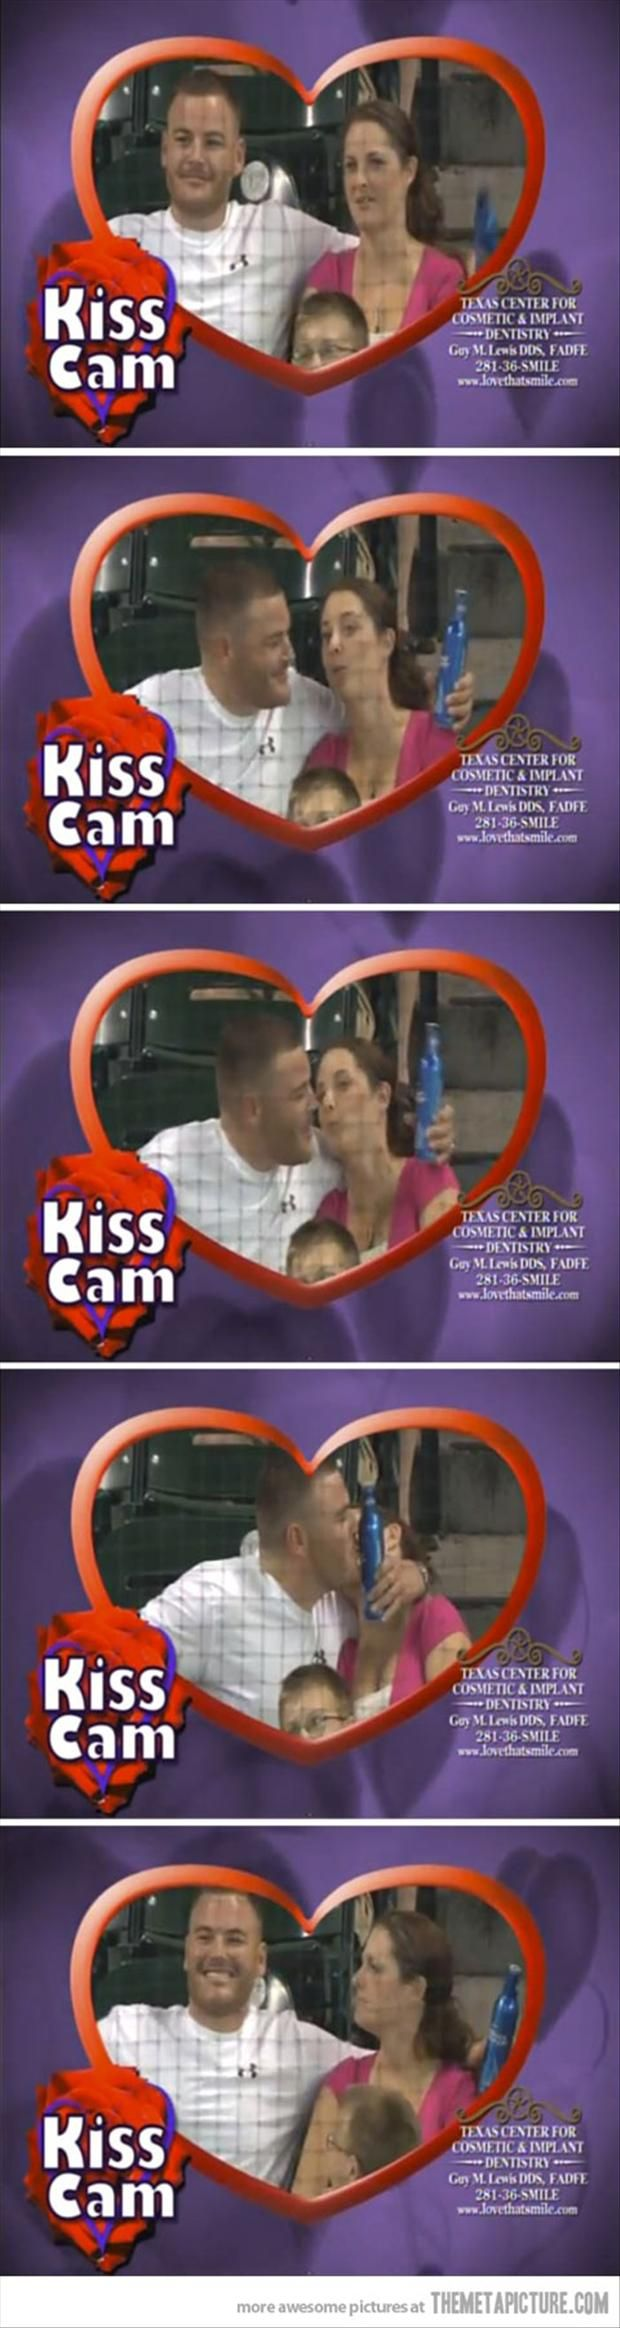 classic: Kiss Cam, The Kiss, Funny Pictures, Giggl, My Husband, Kisscam, Funniest Pictures, So Funny, Funny Man